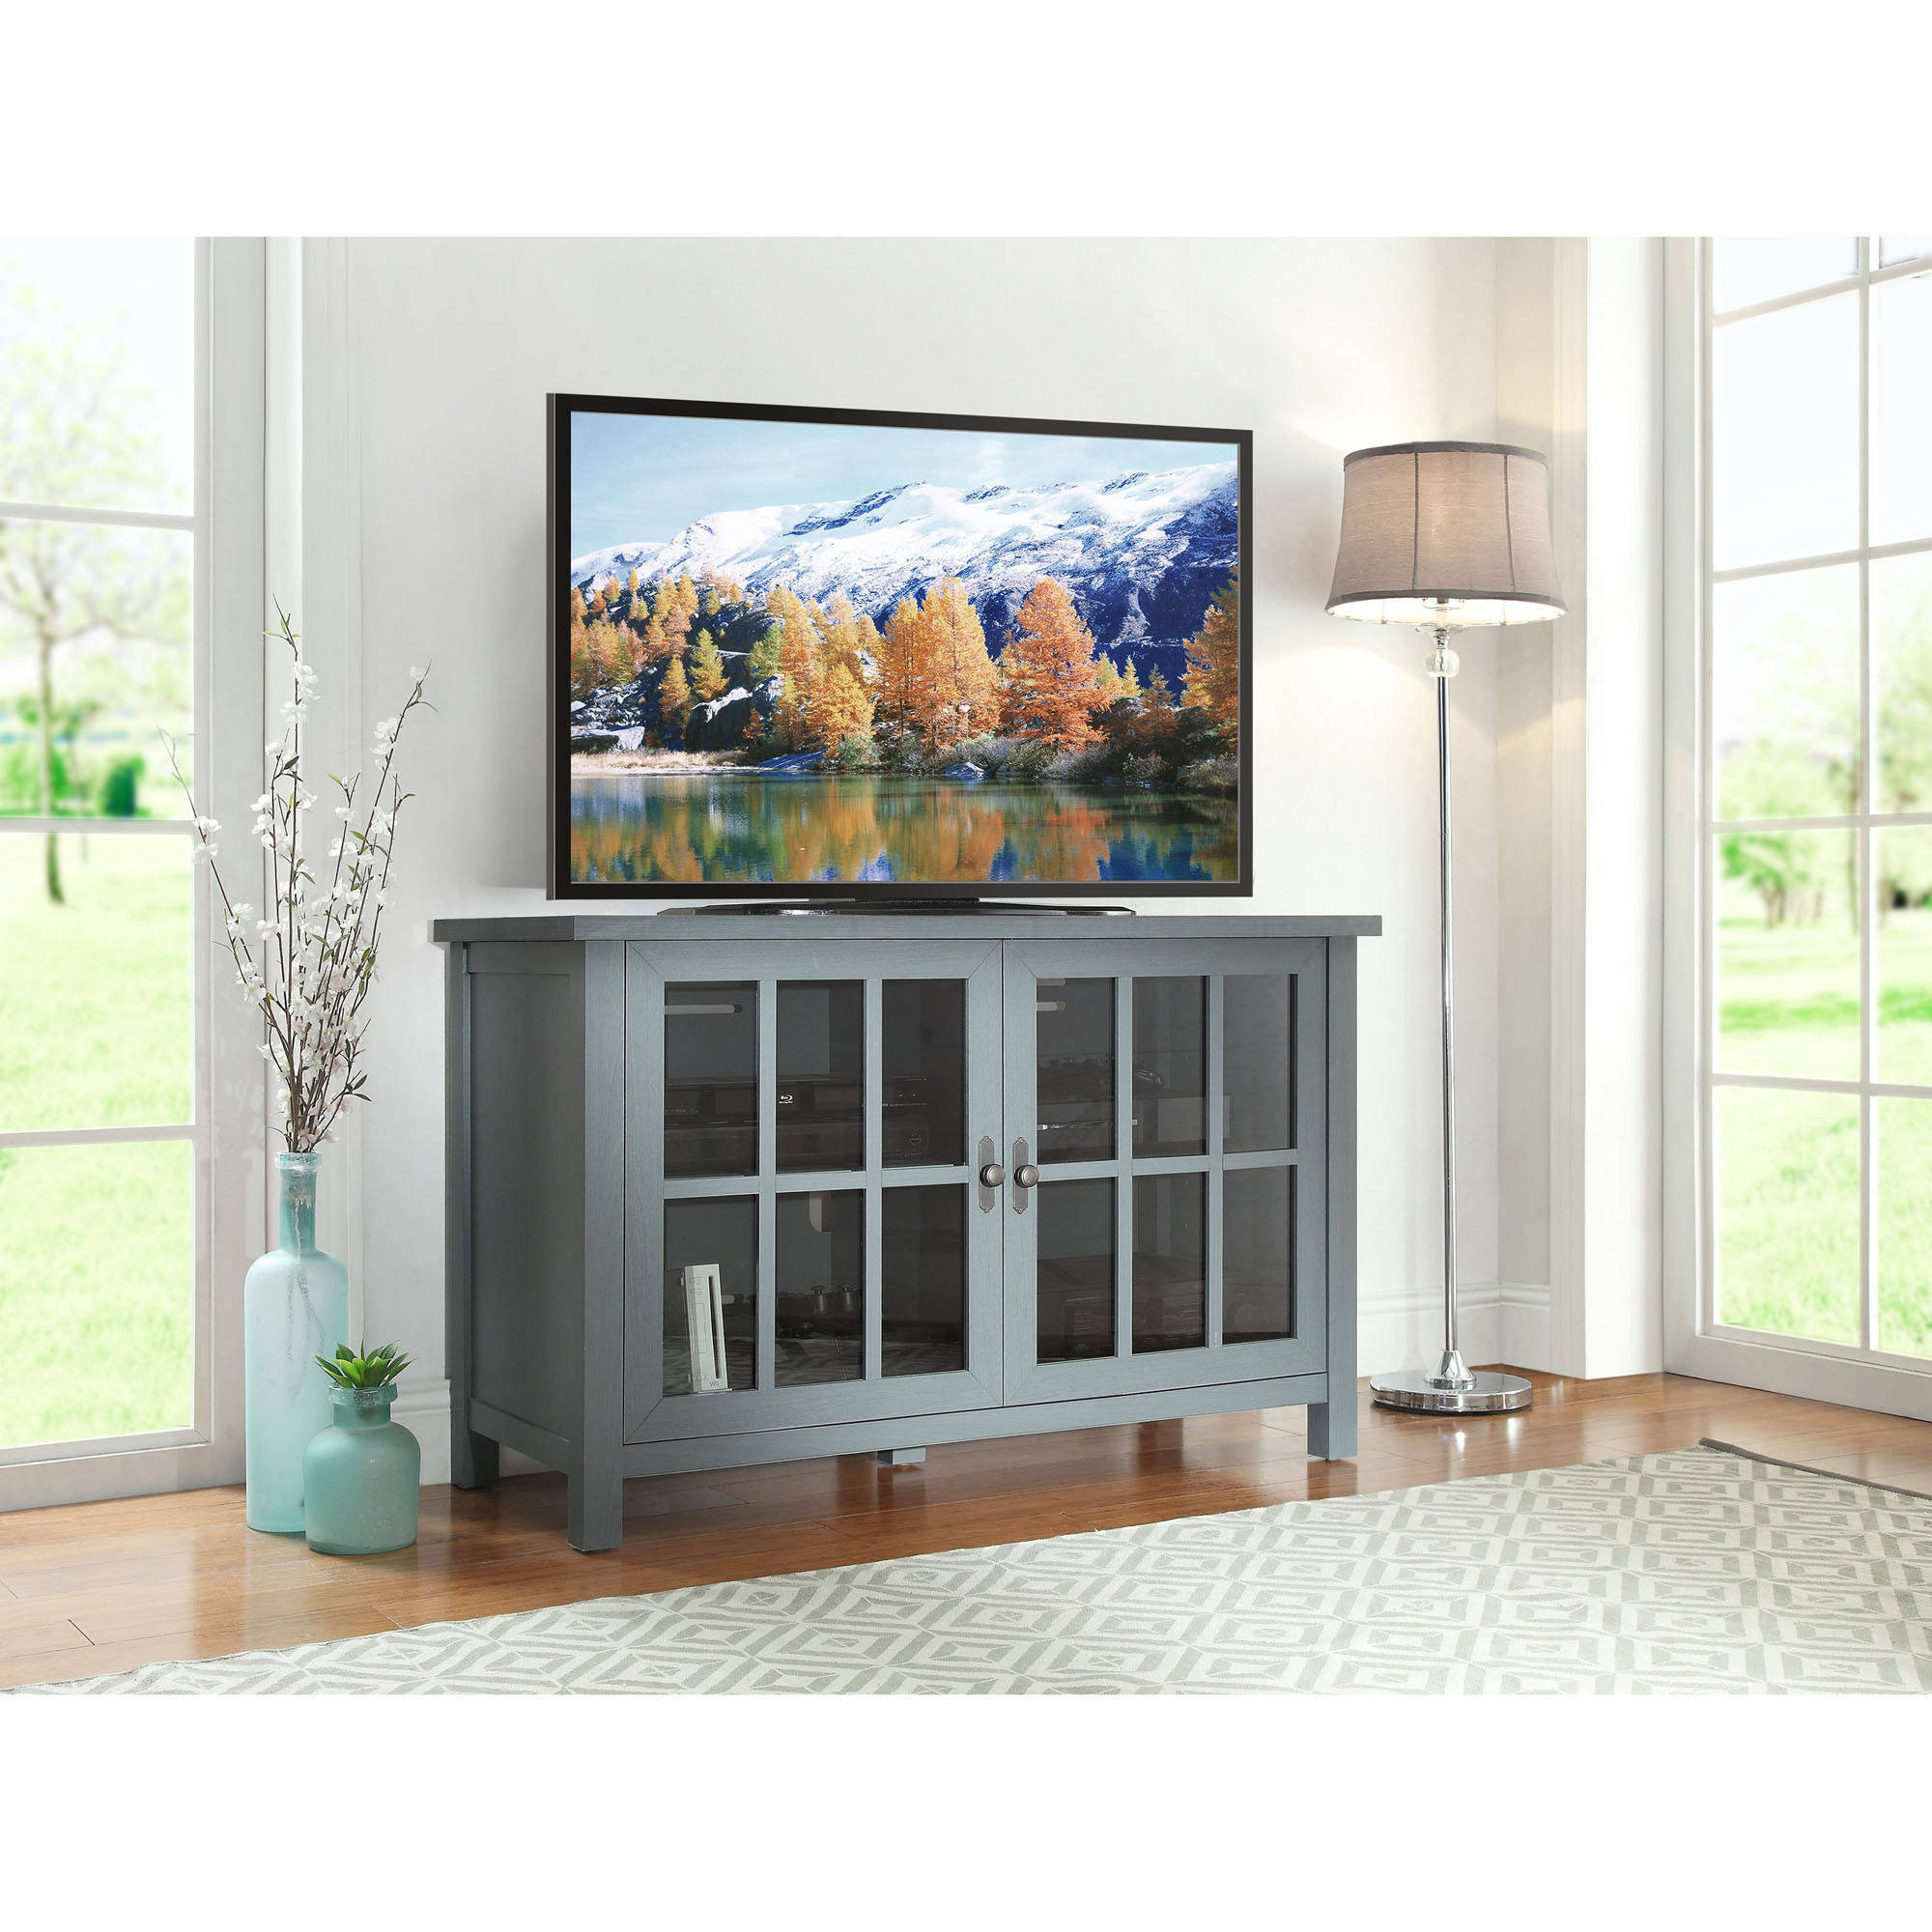 Better Homes and Gardens Oxford Square TV Stand and Console for TVs up to 55